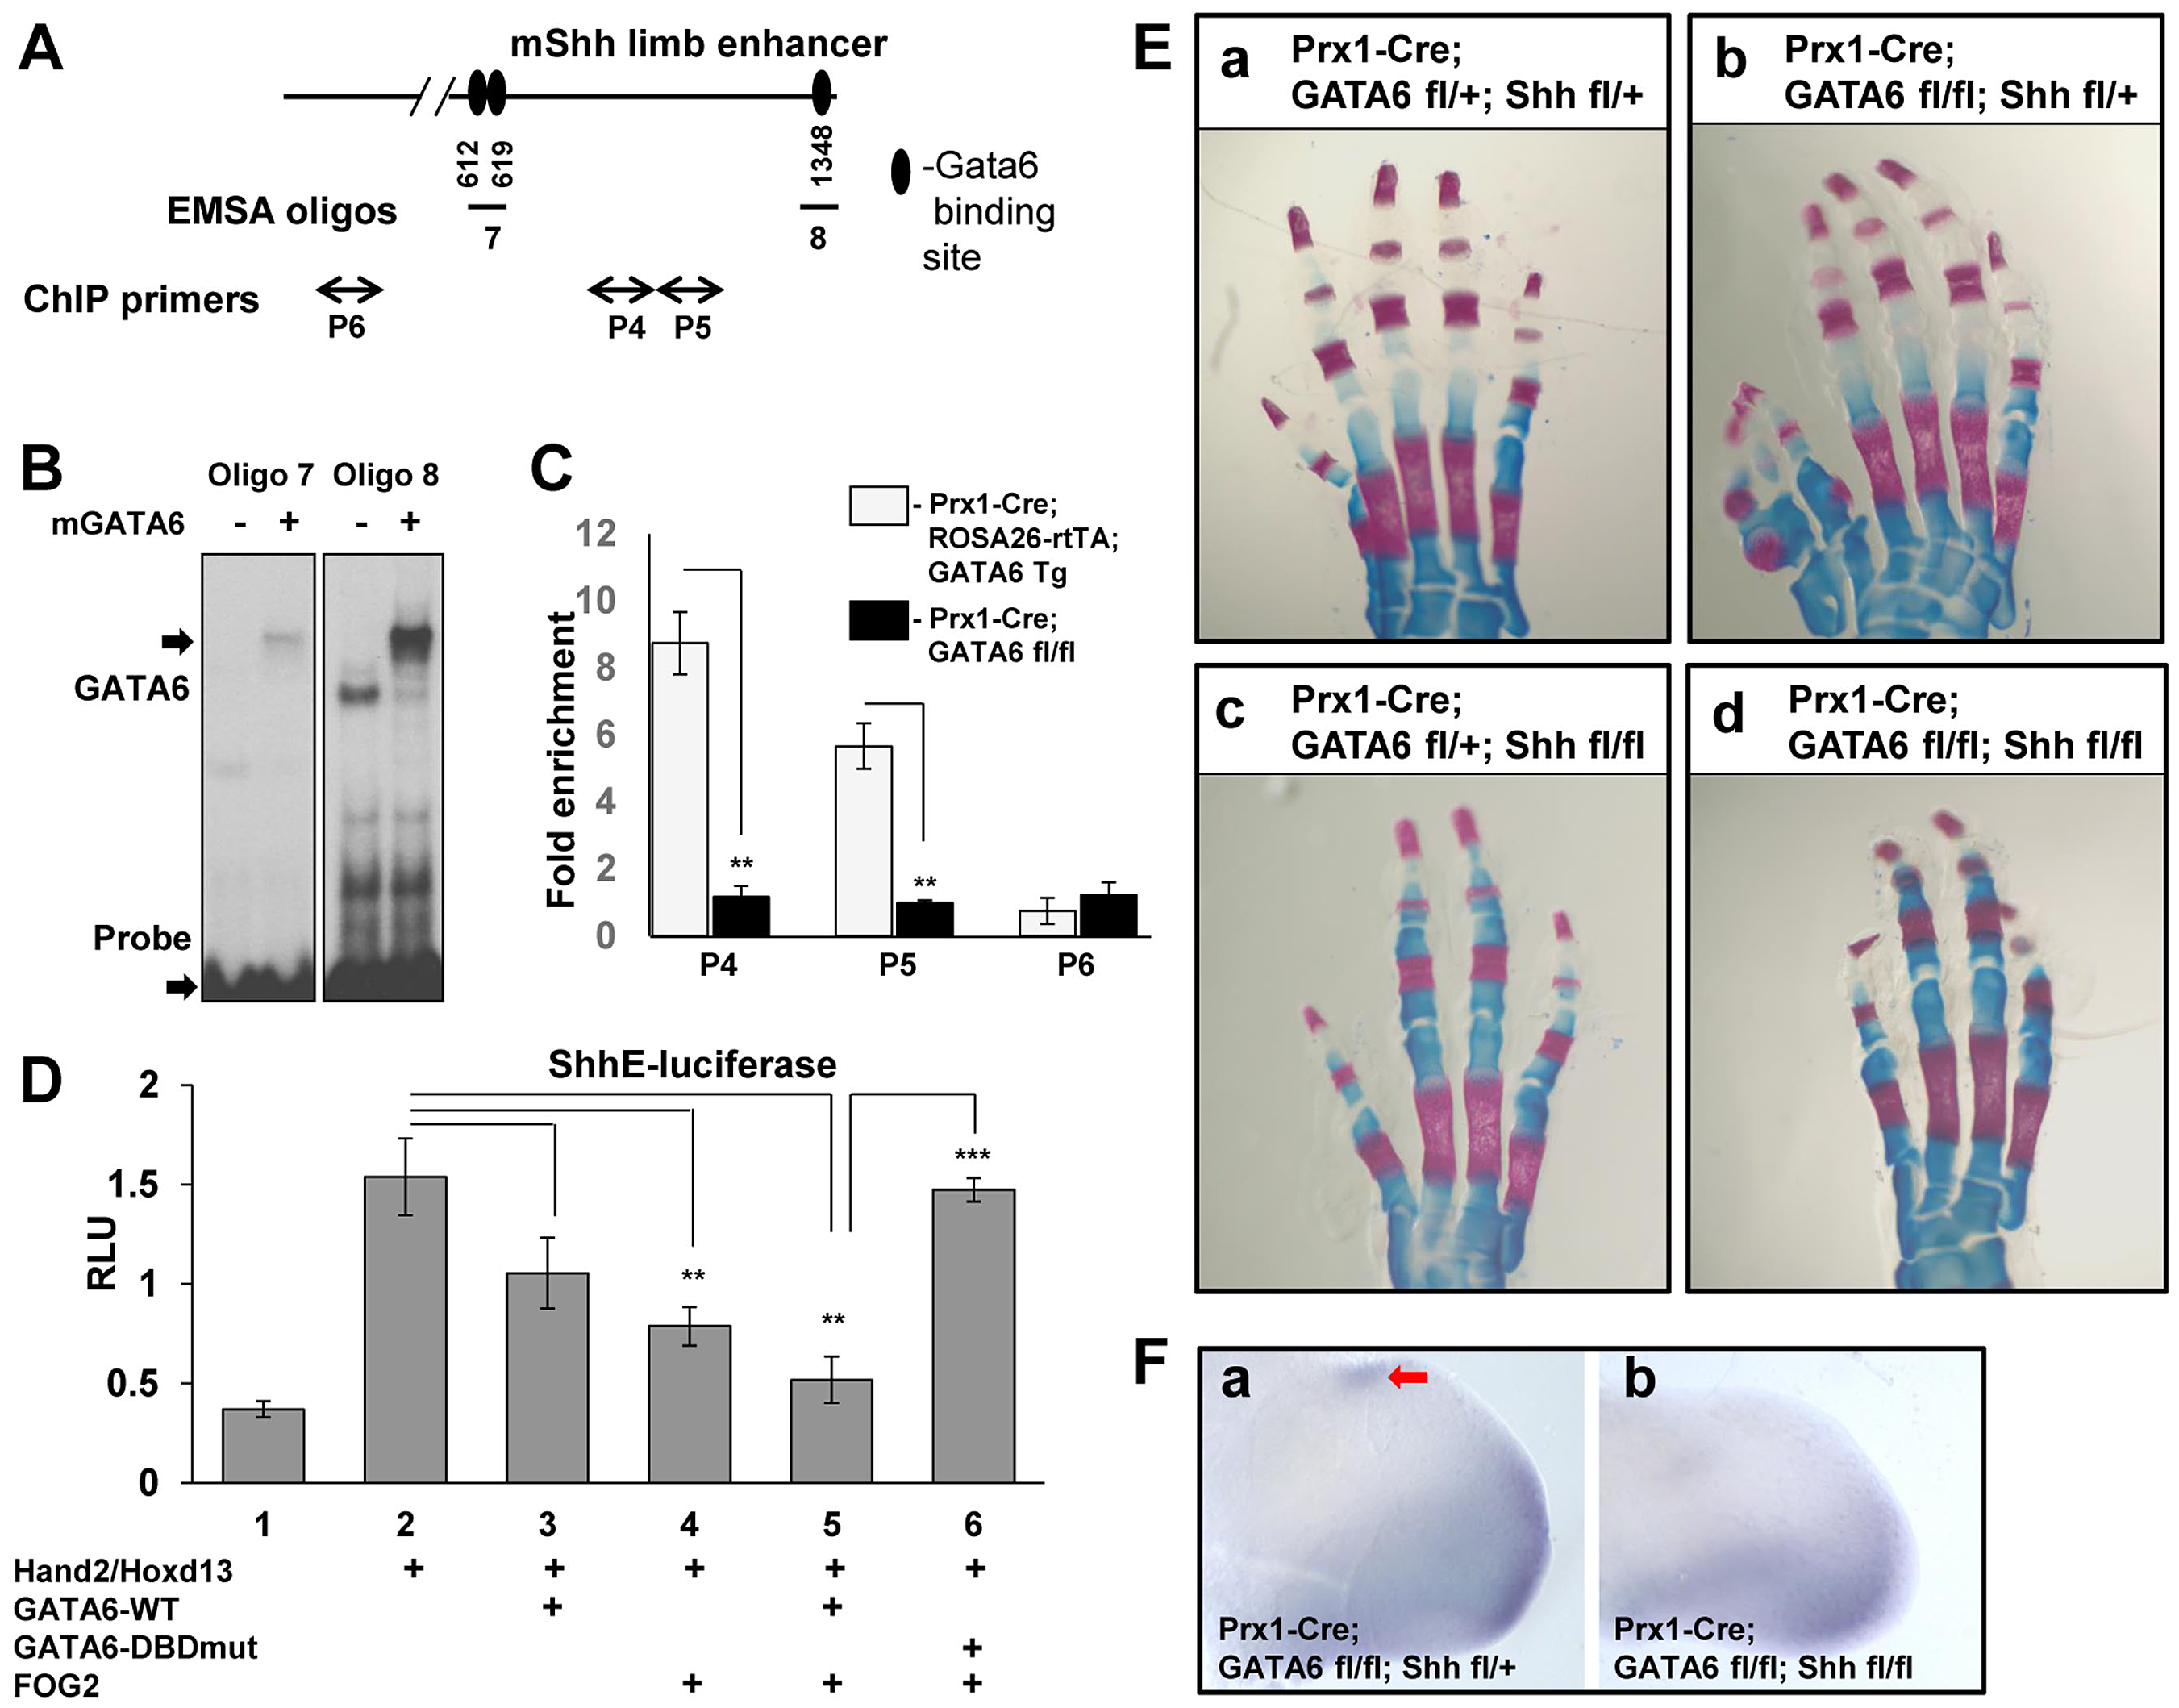 GATA6 binds to regulatory regions that control the expression of the mouse <i>Shh</i> gene and blocks expression of reporters driven by this sequence. Conditional deletion of <i>Shh</i> from the mouse limb bud rescues polydactyly induced by conditional loss of <i>GATA6</i> in the mouse hindlimbs.